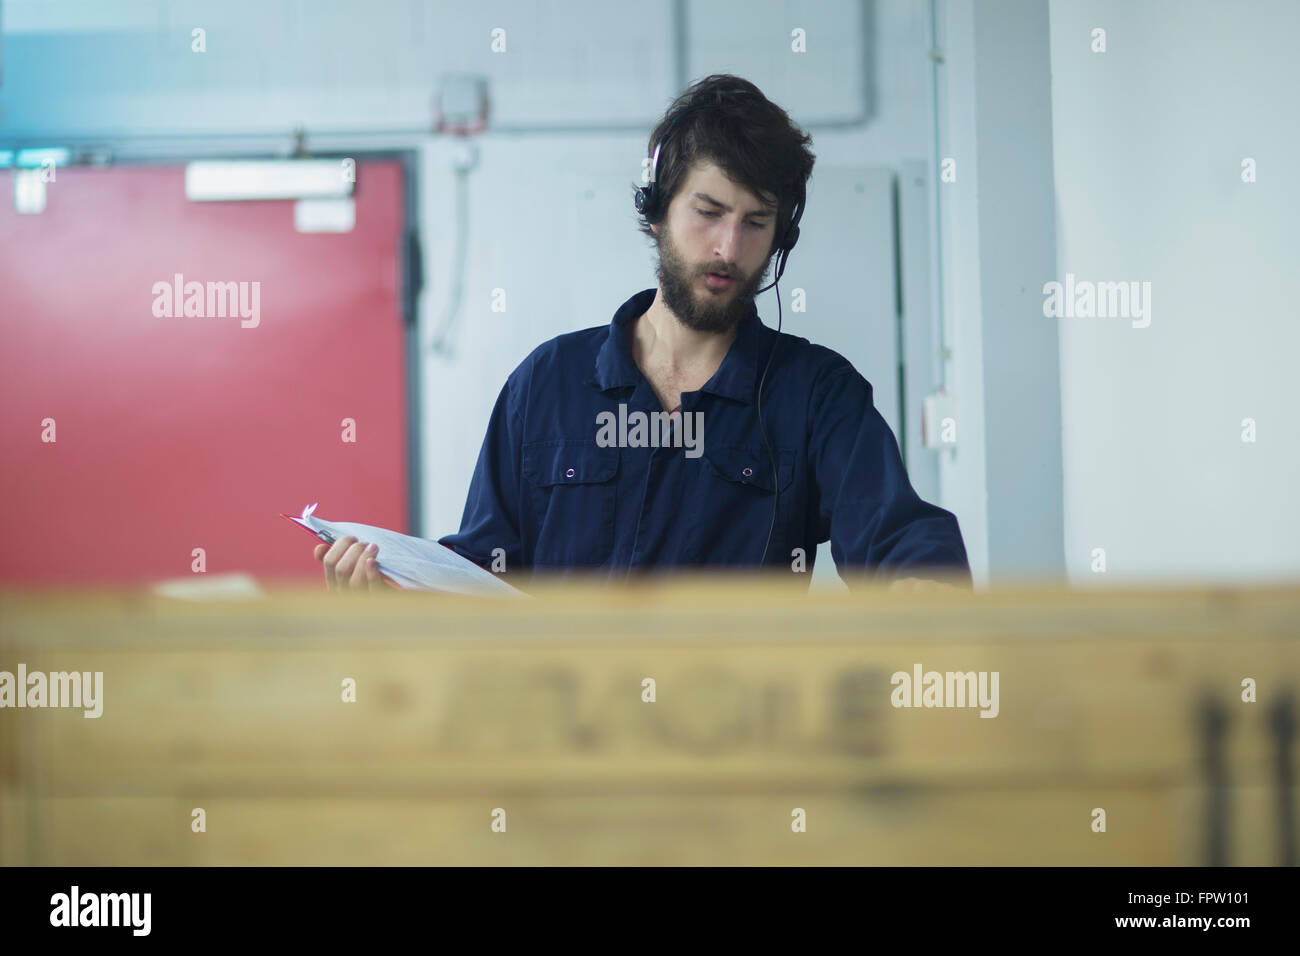 Container Freiburg Young Engineer Wearing Headset And Checking Cargo Container In An